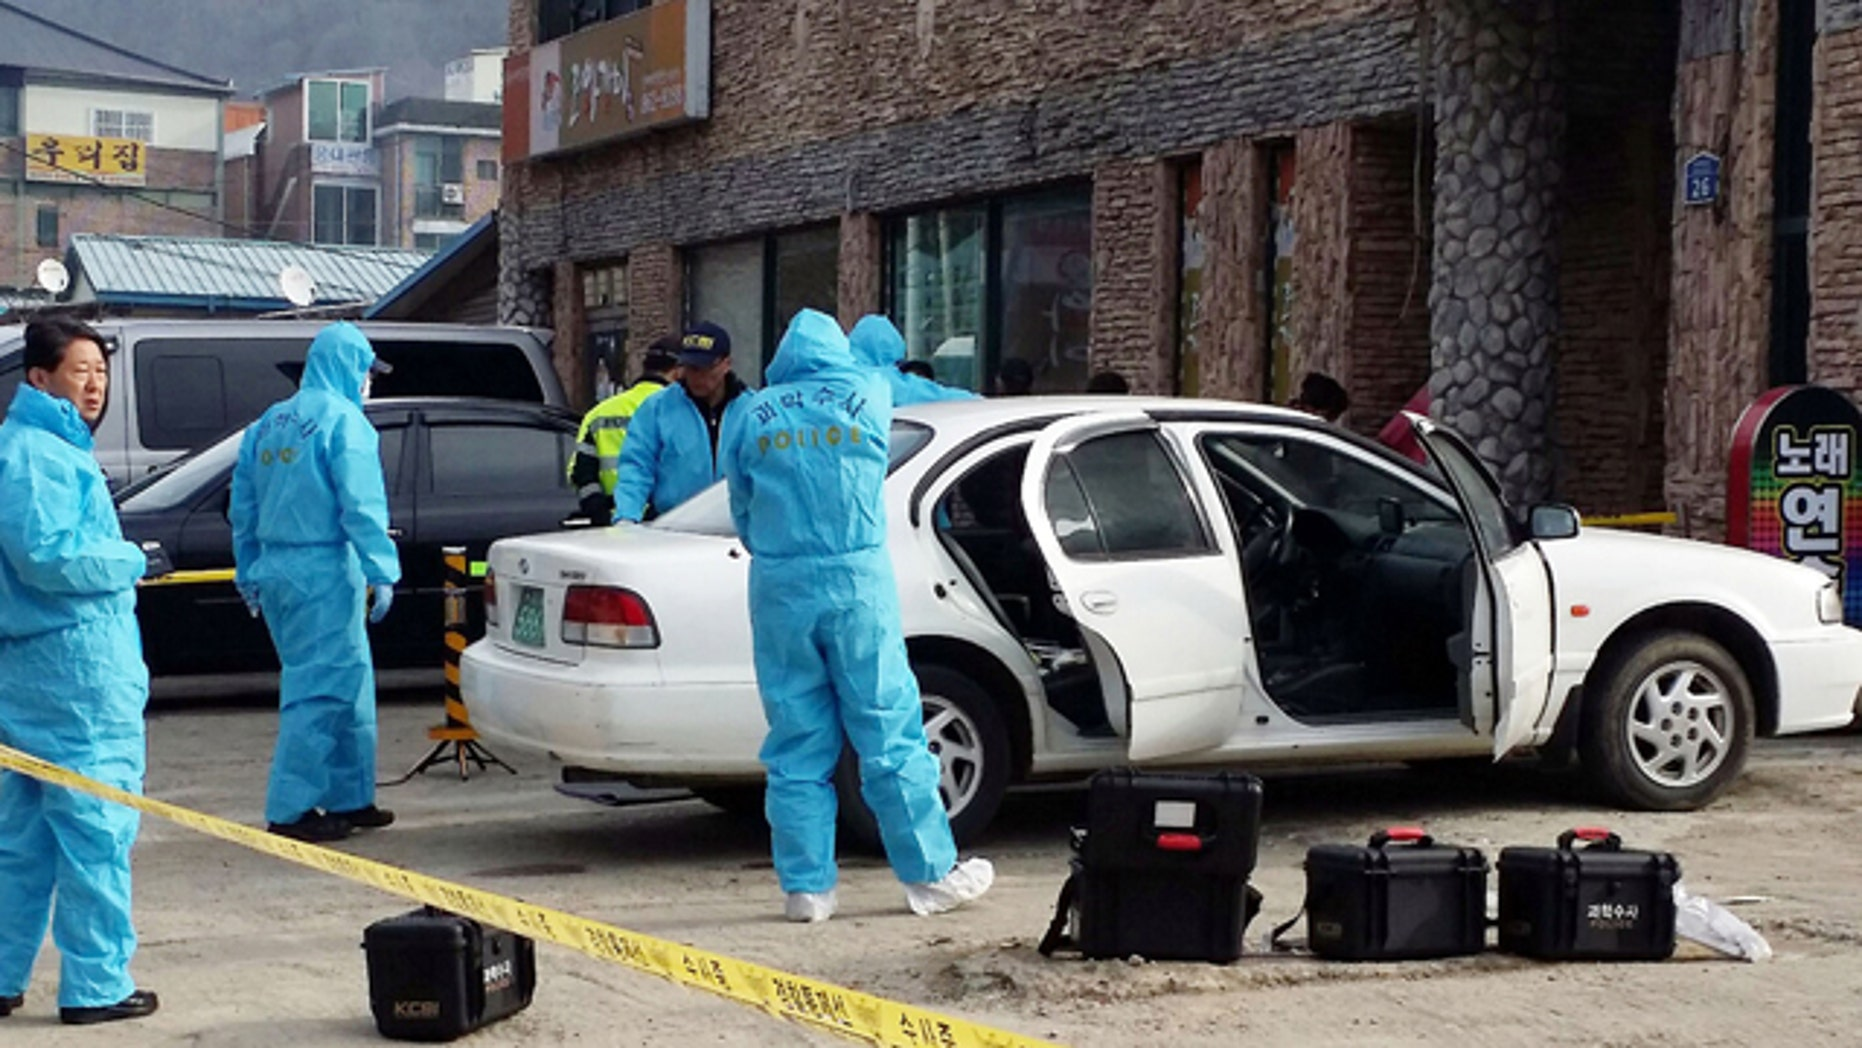 Feb. 25, 2015: South Korean police officers investigate a vehicle near the scene of an incident in Sejong, south of Seoul. South Korean police said Wednesday that three people were dead after a gunman opened fire at a store in Sejong City and set the store on fire before fleeing. (AP Photo/Yonhap, Lee Jae-lim)